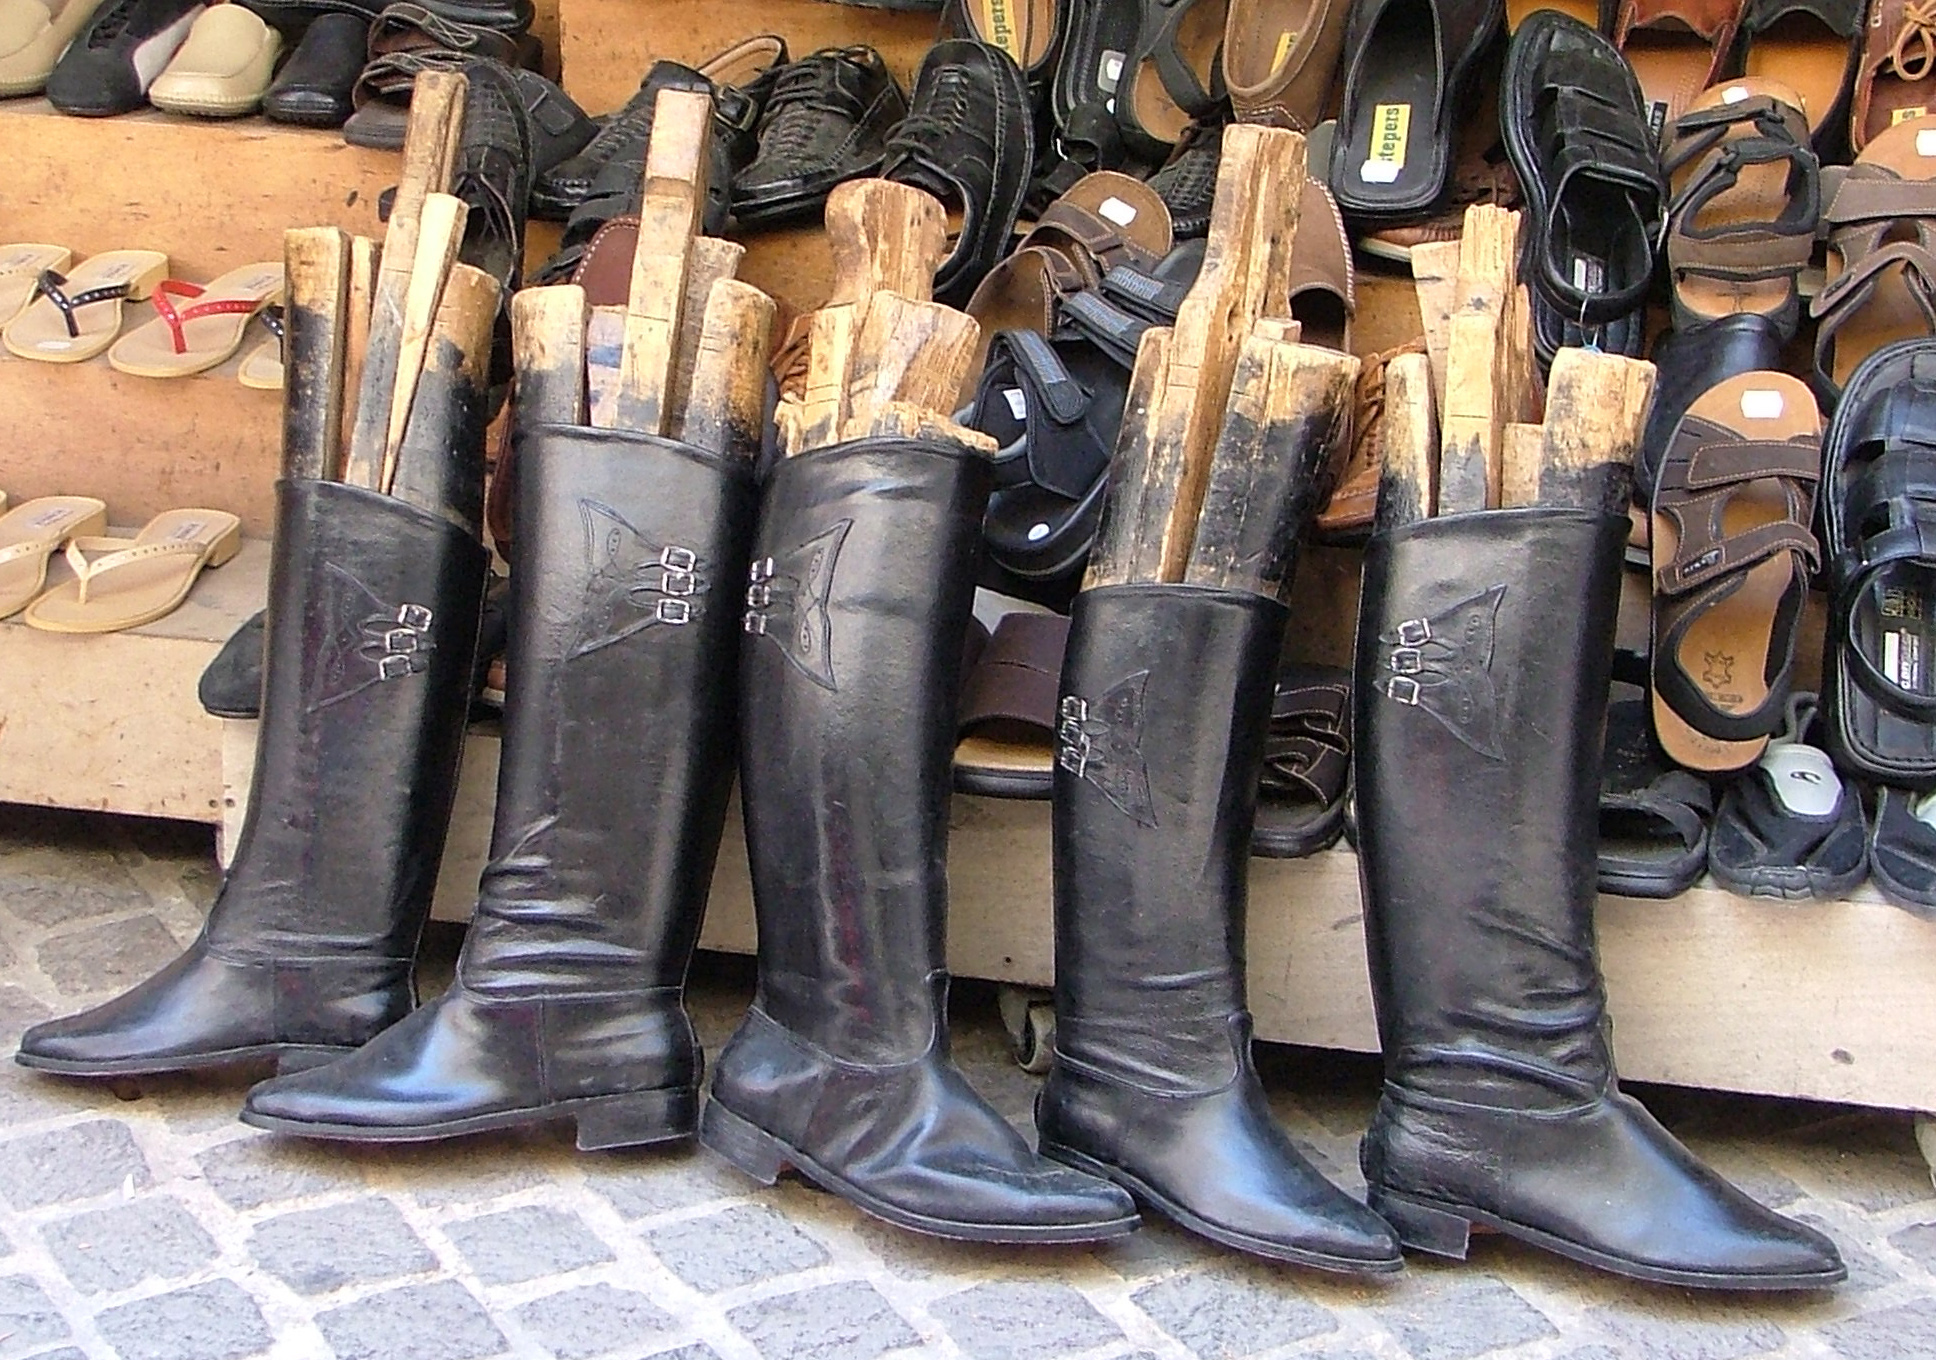 Shoes and boots, Boots, Crete, Feets, Footwear, HQ Photo